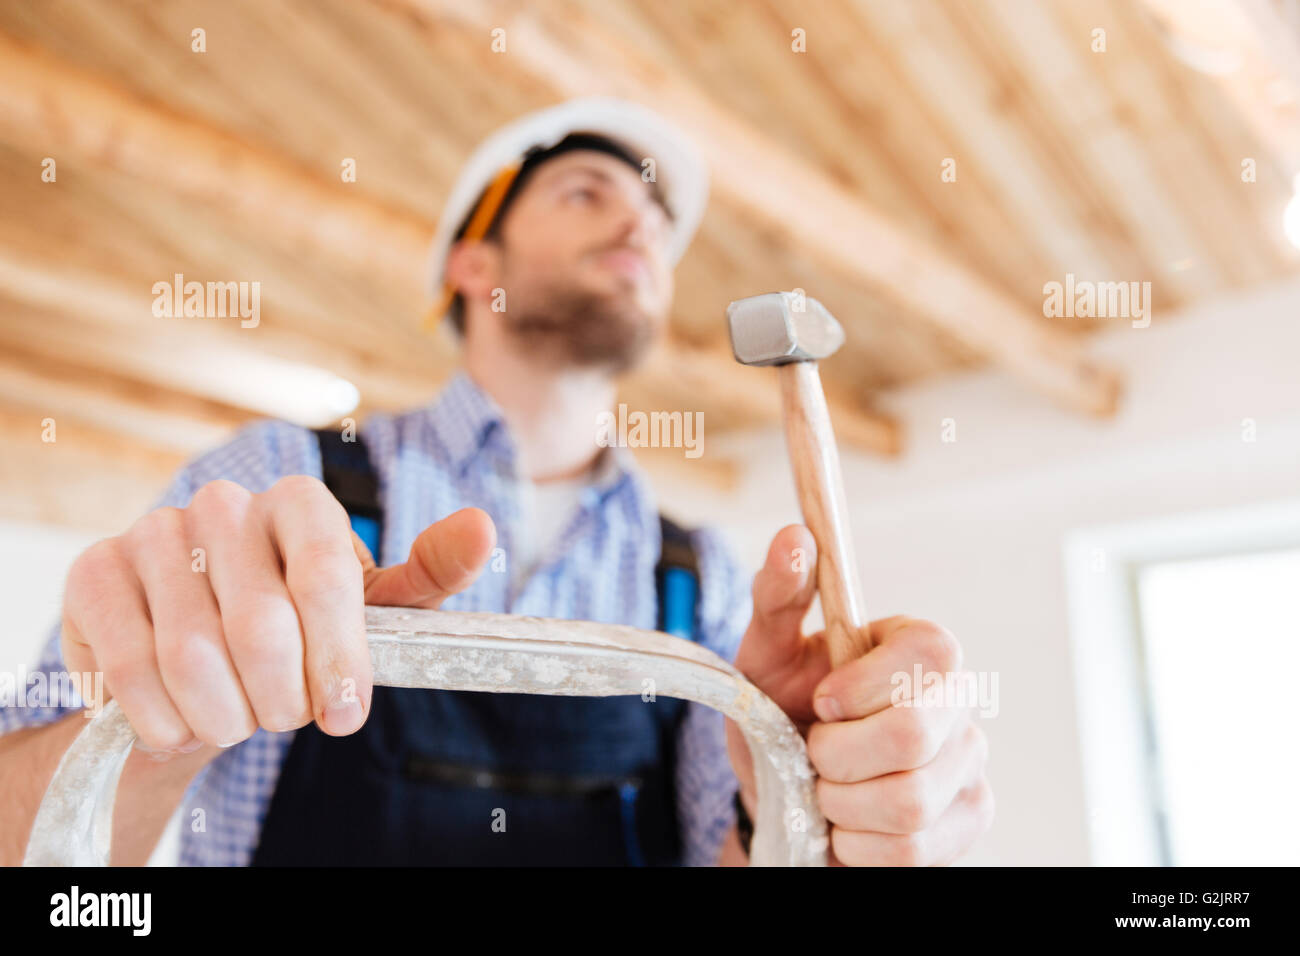 Close-up portrait of a handyman with a hammer in his hands, standing on the ladder, unfocused - Stock Image